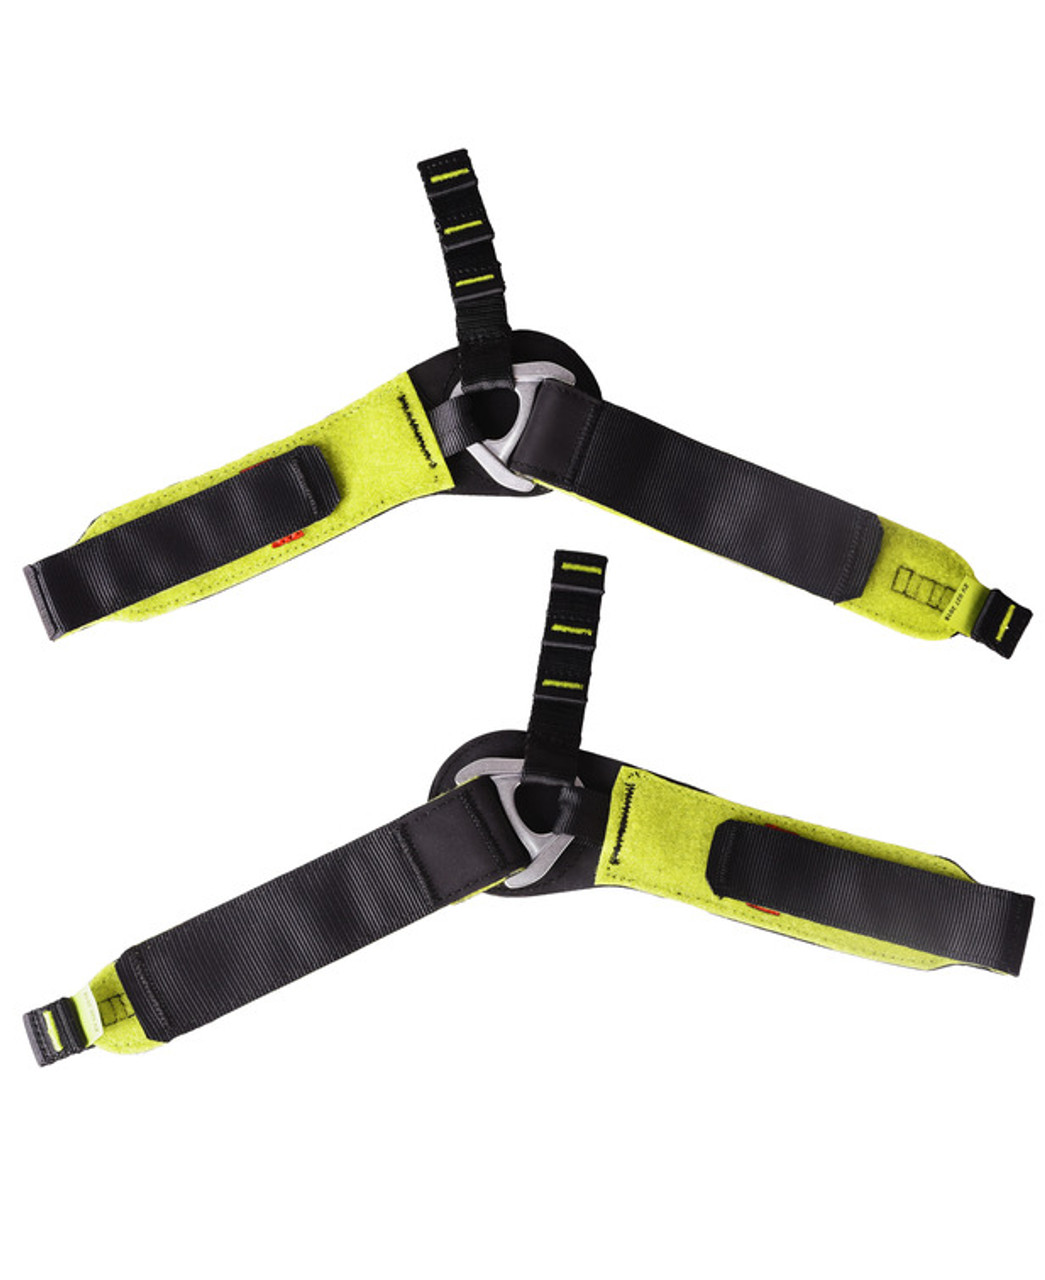 Edelrid Talon Lower Strap System